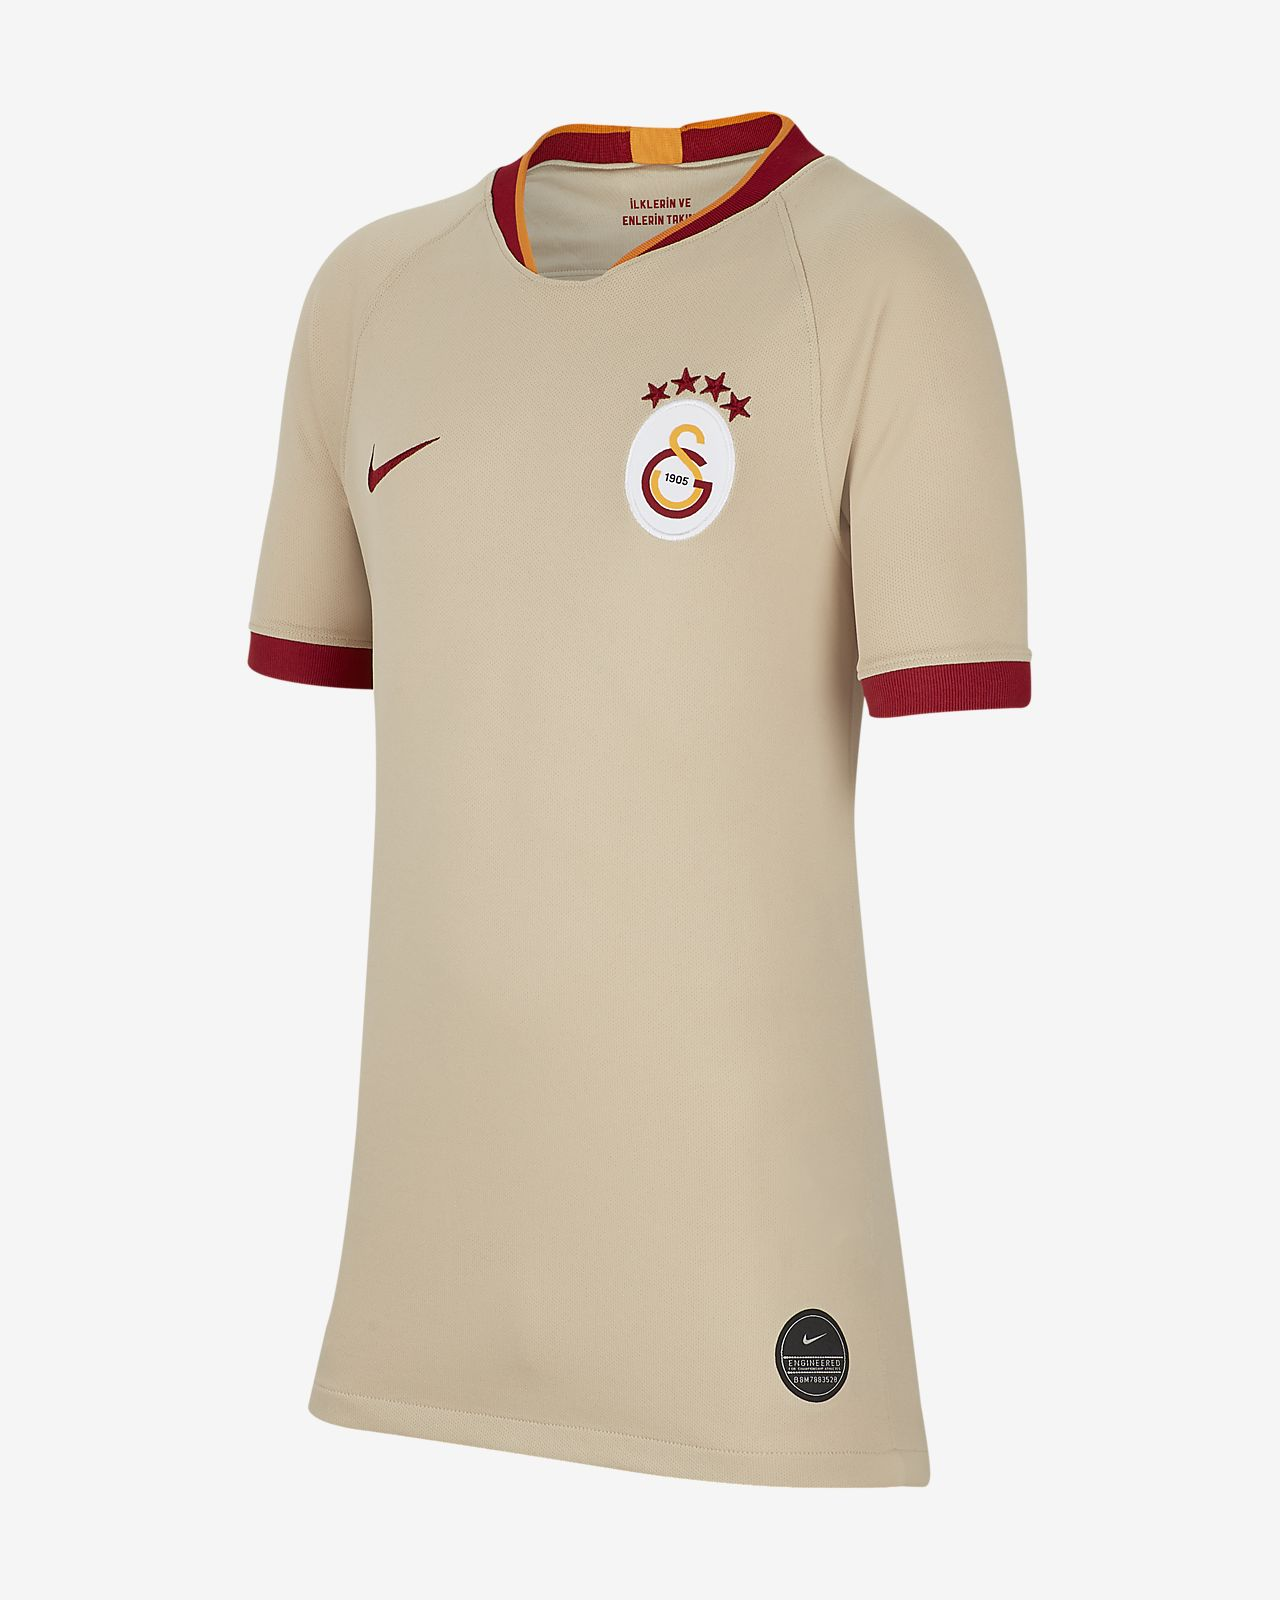 Maillot de football Galatasaray 2020 Stadium Away pour Enfant plus âgé